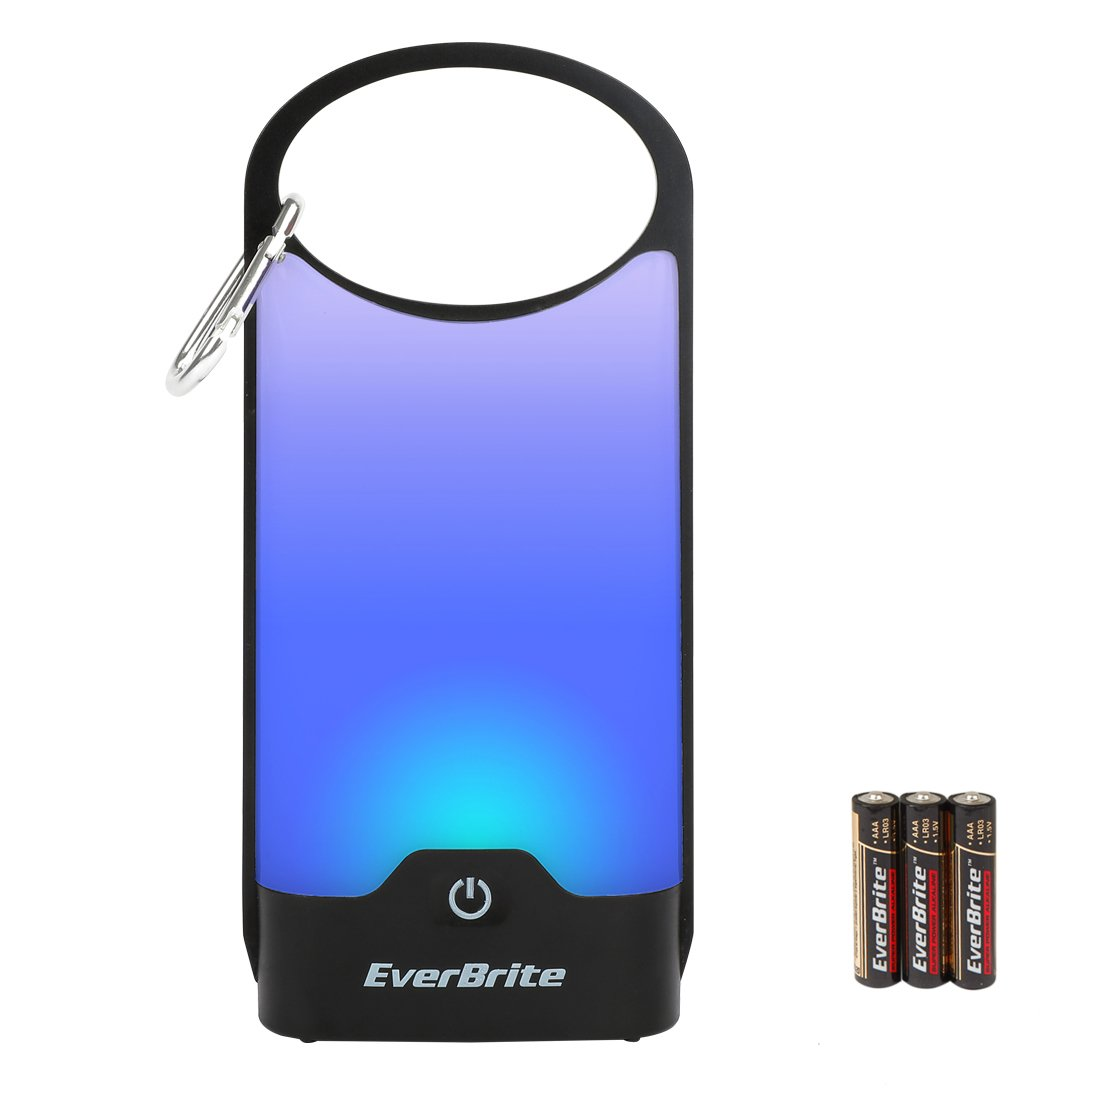 EverBrite LED Camping Lantern Touch Control 150 Lumen 5 Modes Ultra Bright Hiking Fishing Outdoor Handheld Night Lights 3 AAA Batteries Included